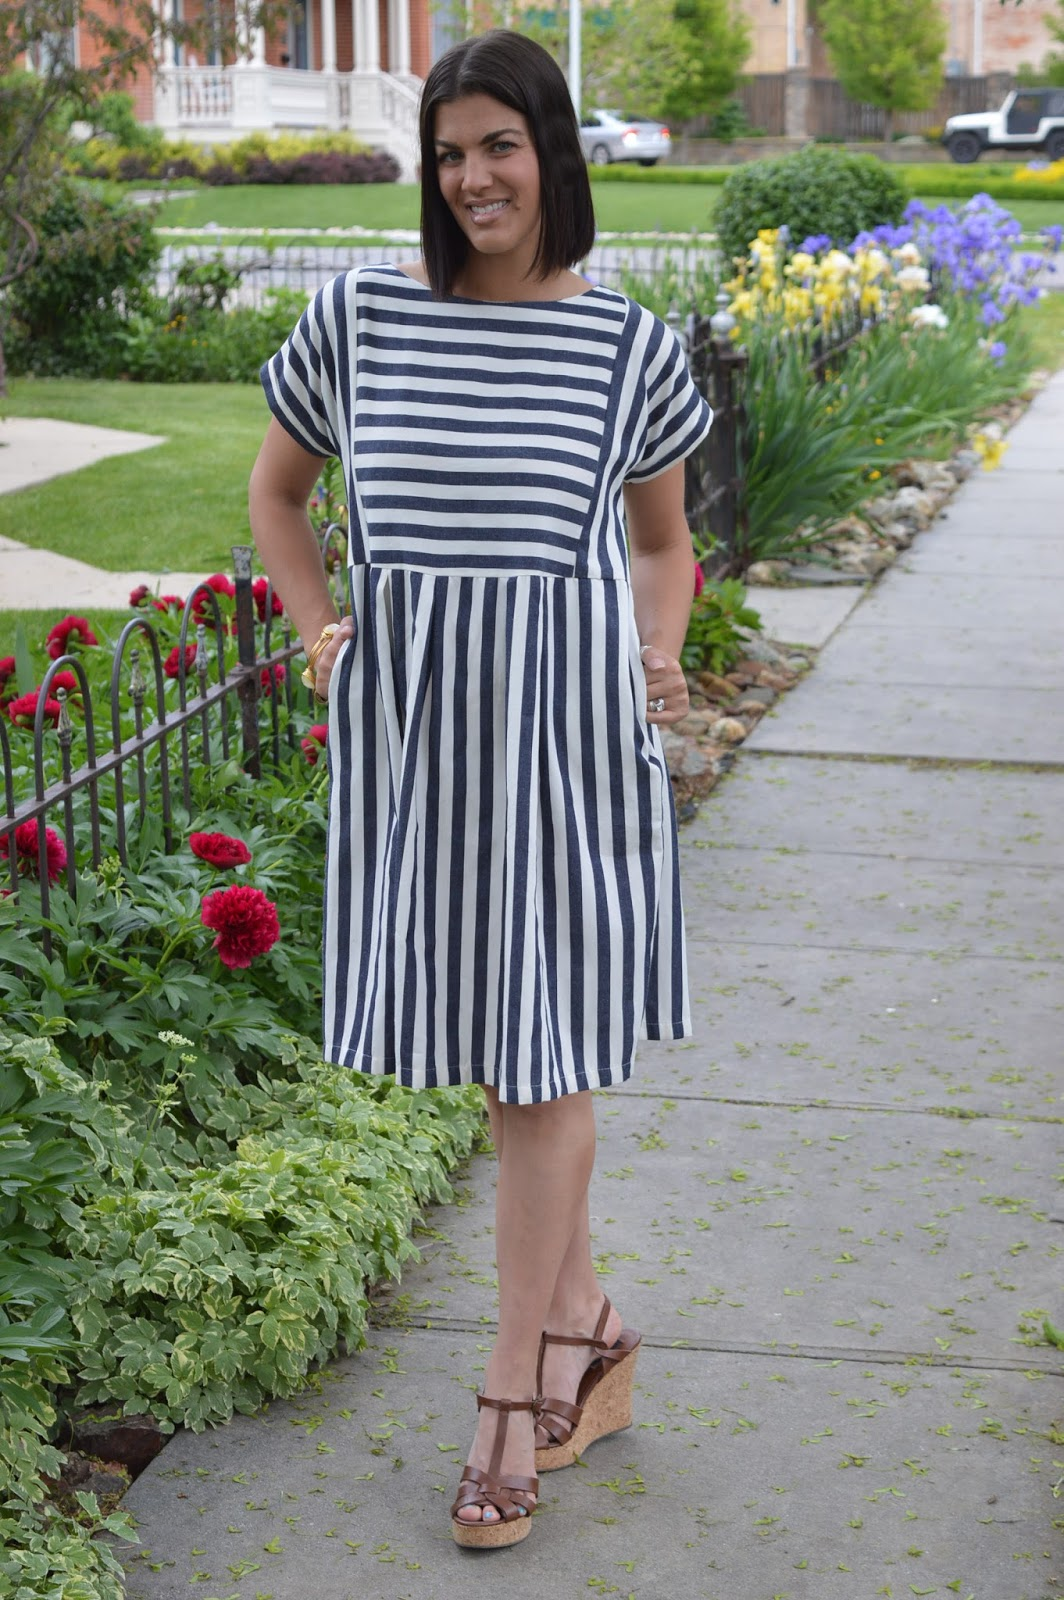 http://taralynnsboutique.com/collections/short-dresses/products/striped-bib-dress